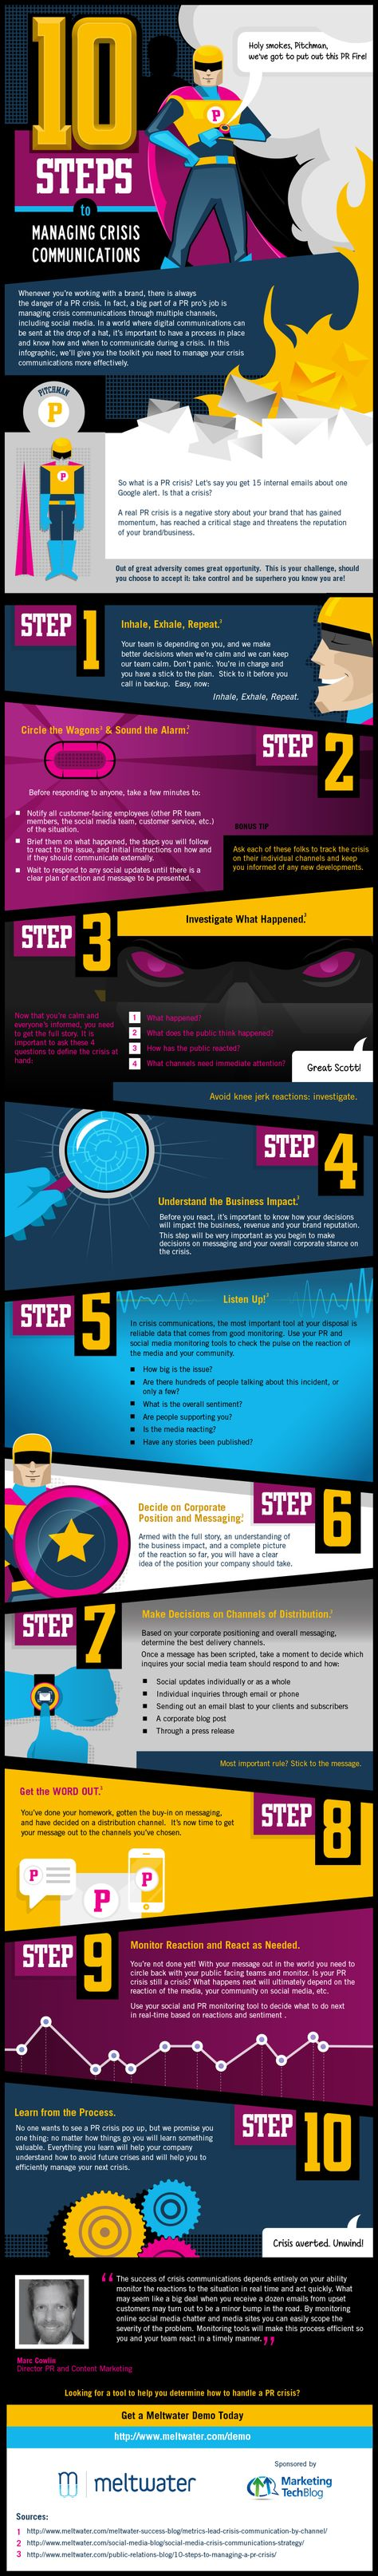 Managing Crisis Communications   A Step by Step Infographic from Martech Zone